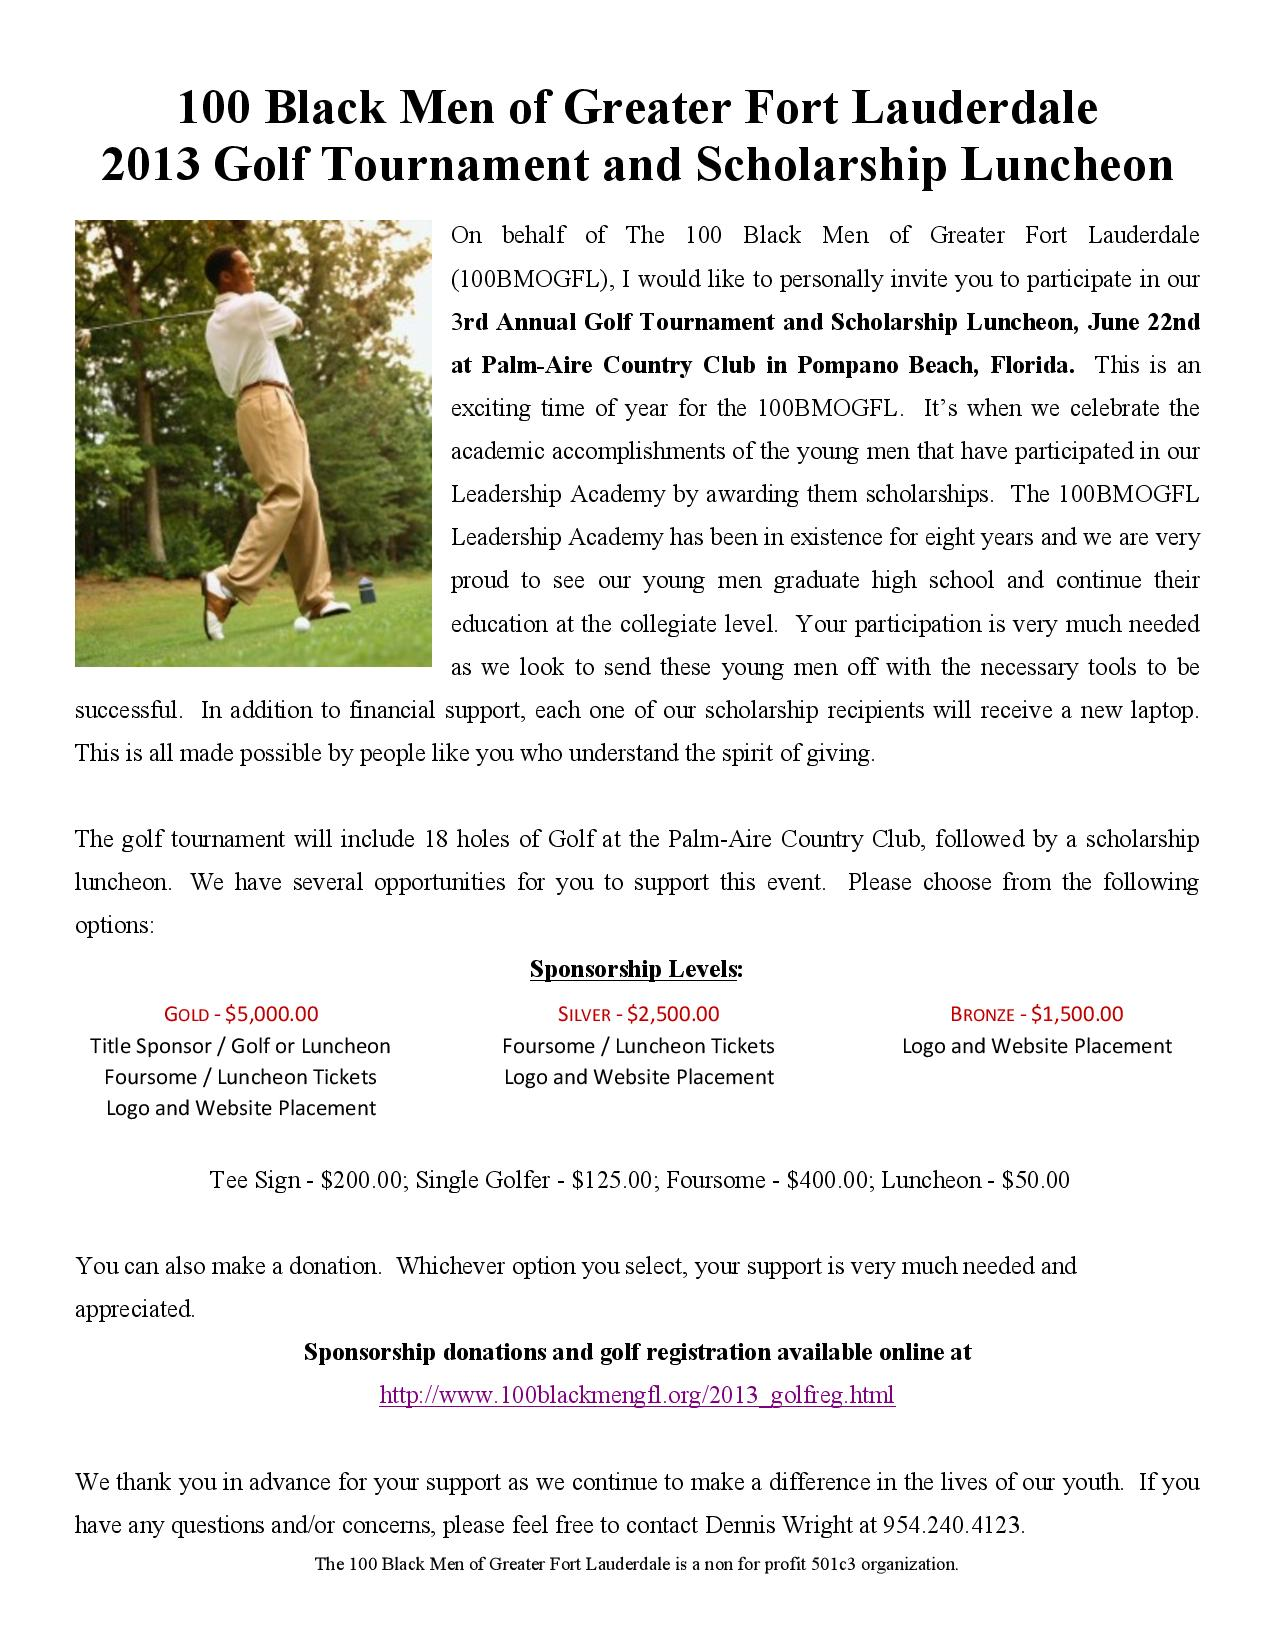 2013 Golf Sponsorship Letter President page 002 100 Black Men of Greater Fort Lauderdale 2013 Golf Tournament and Scholarship Luncheon